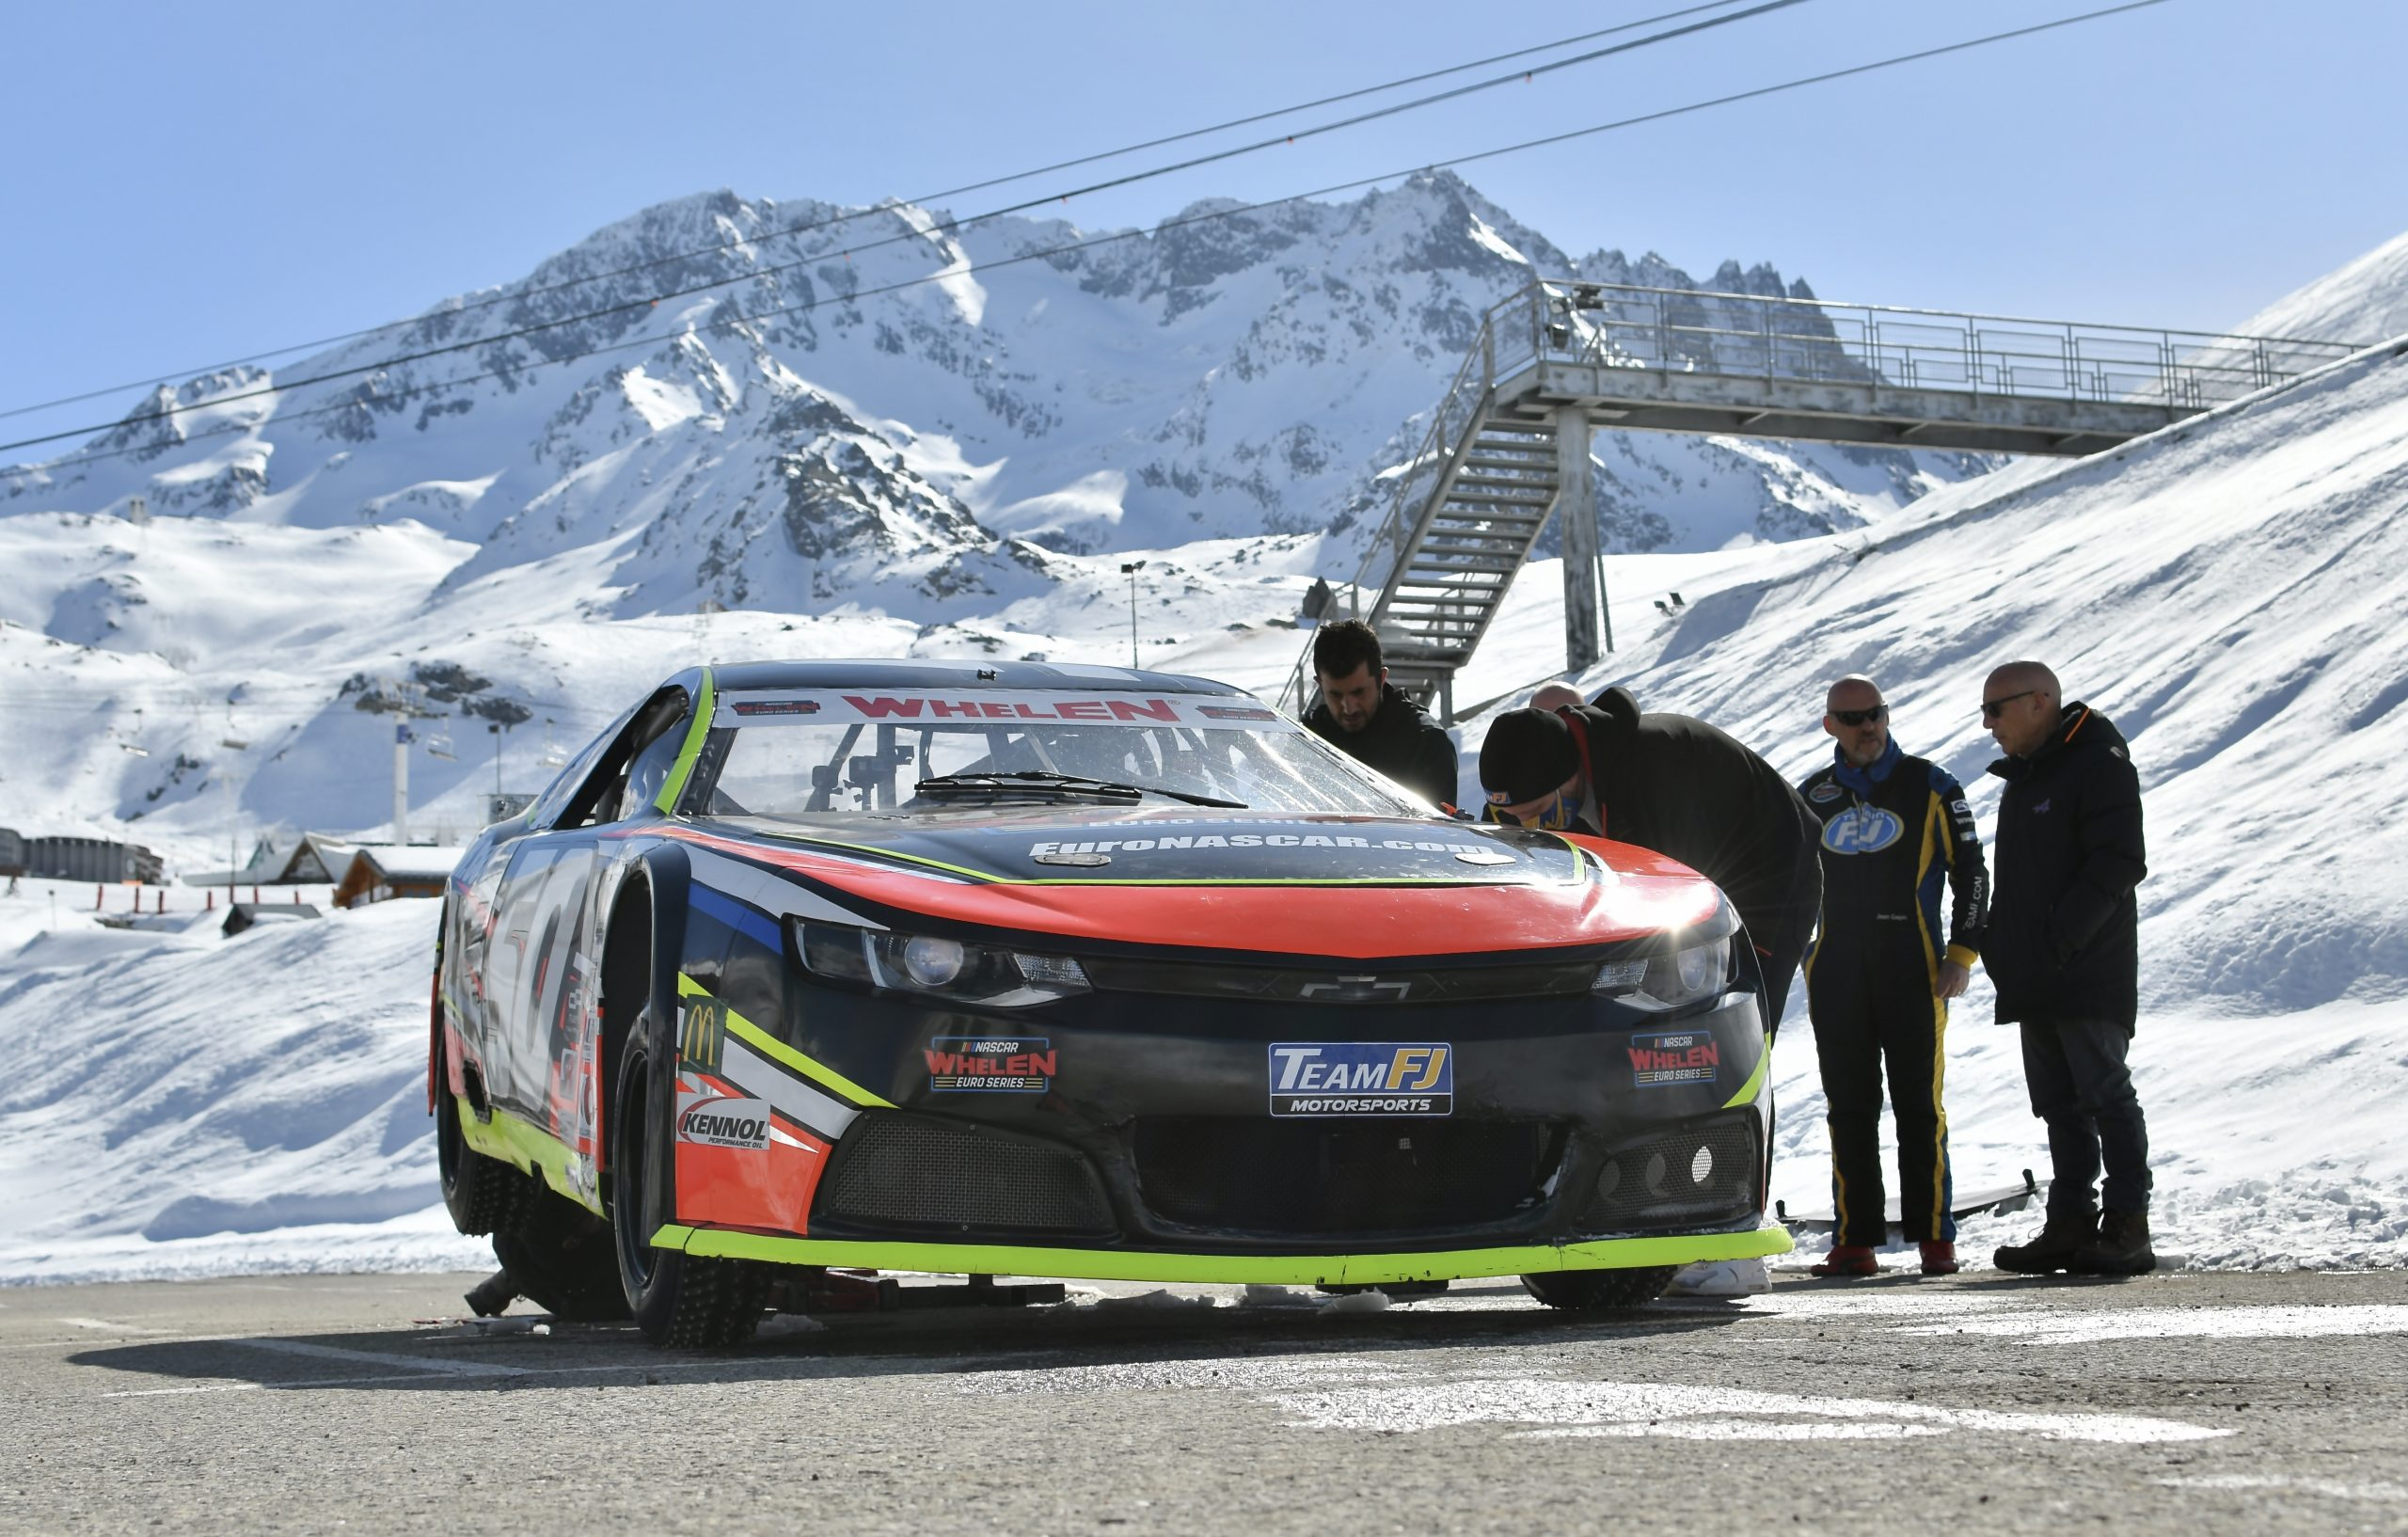 NASCAR on ice front stop maintenance